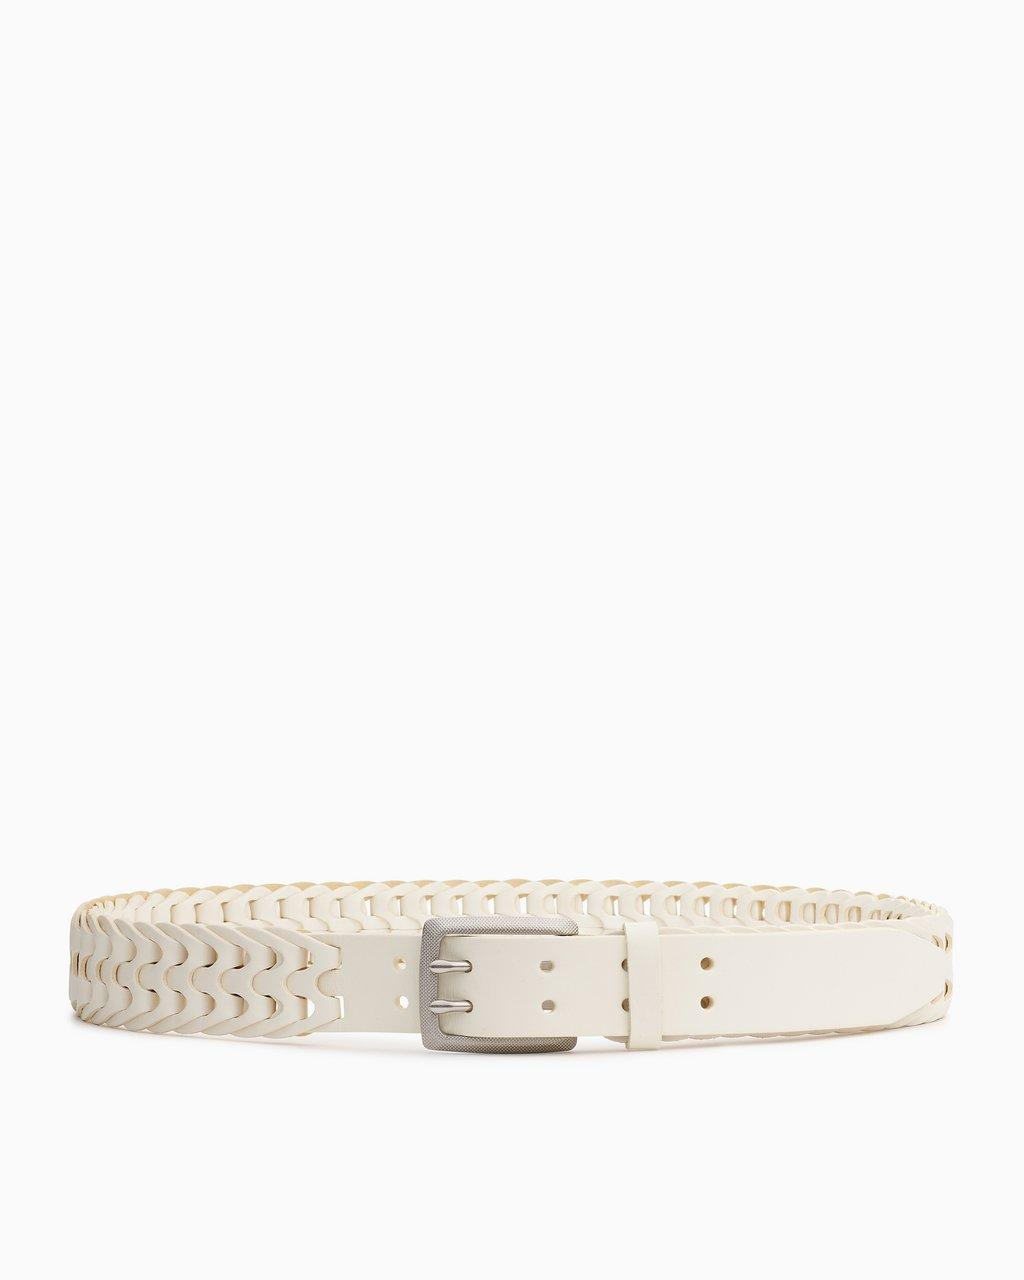 Woven South Dress Belt